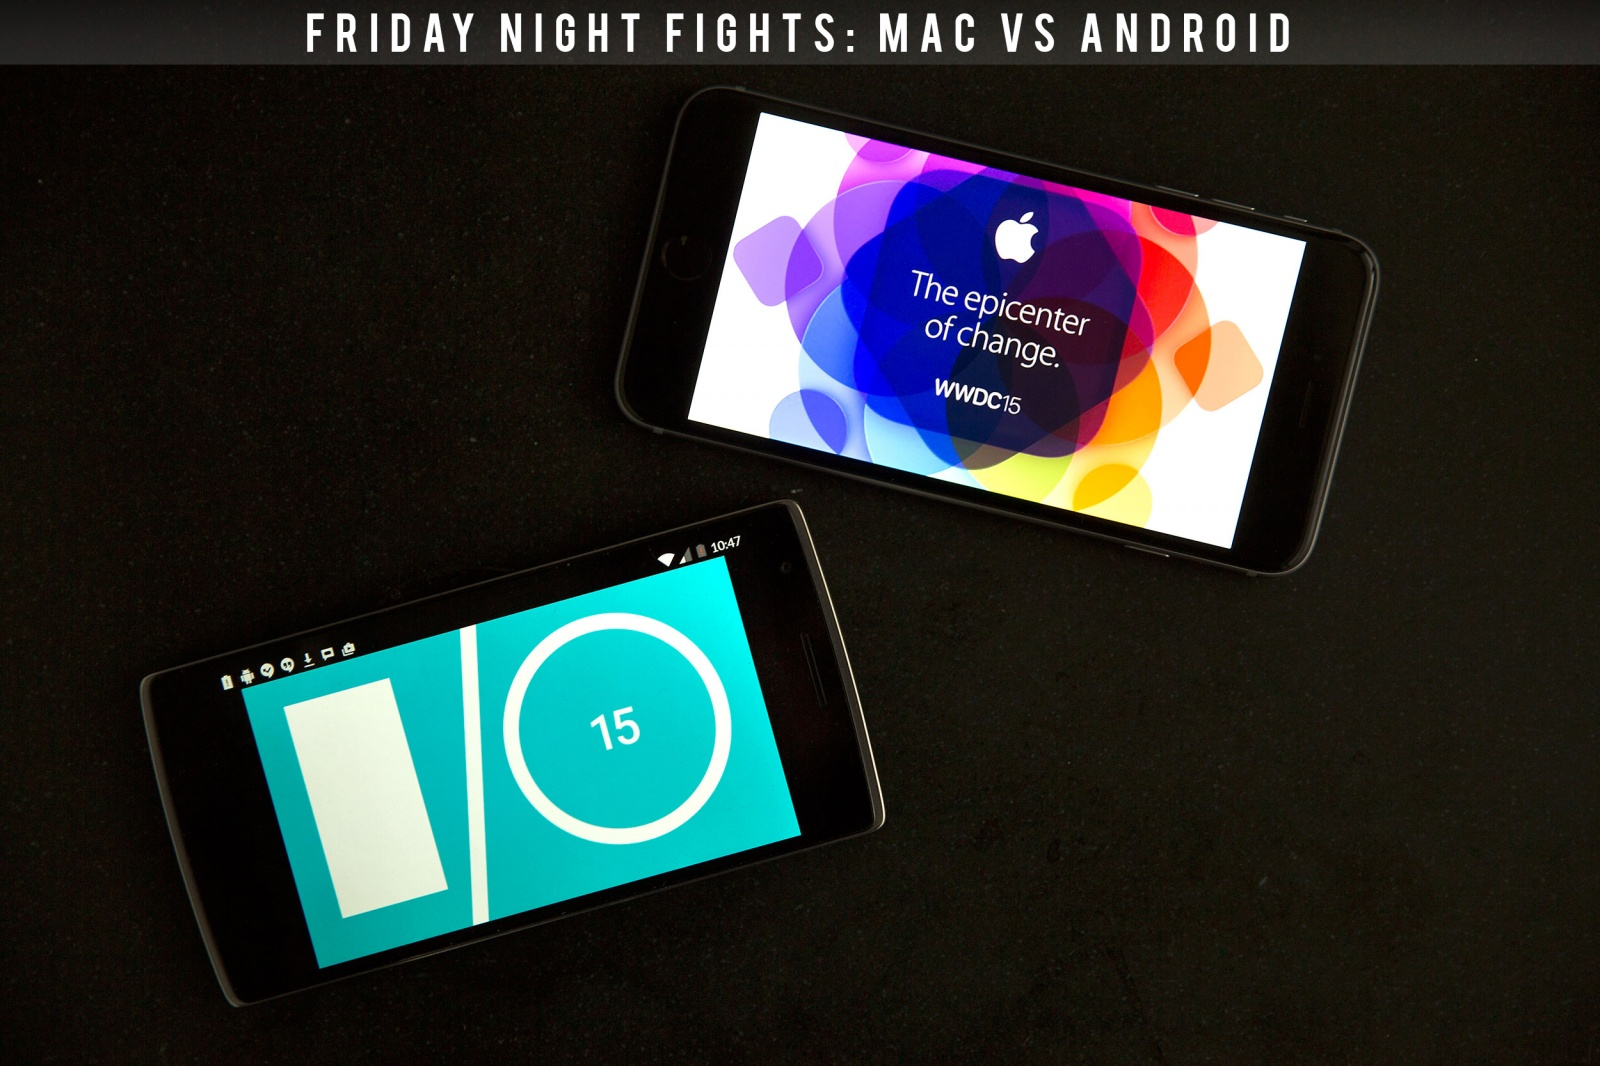 Friday Night Fights returns!